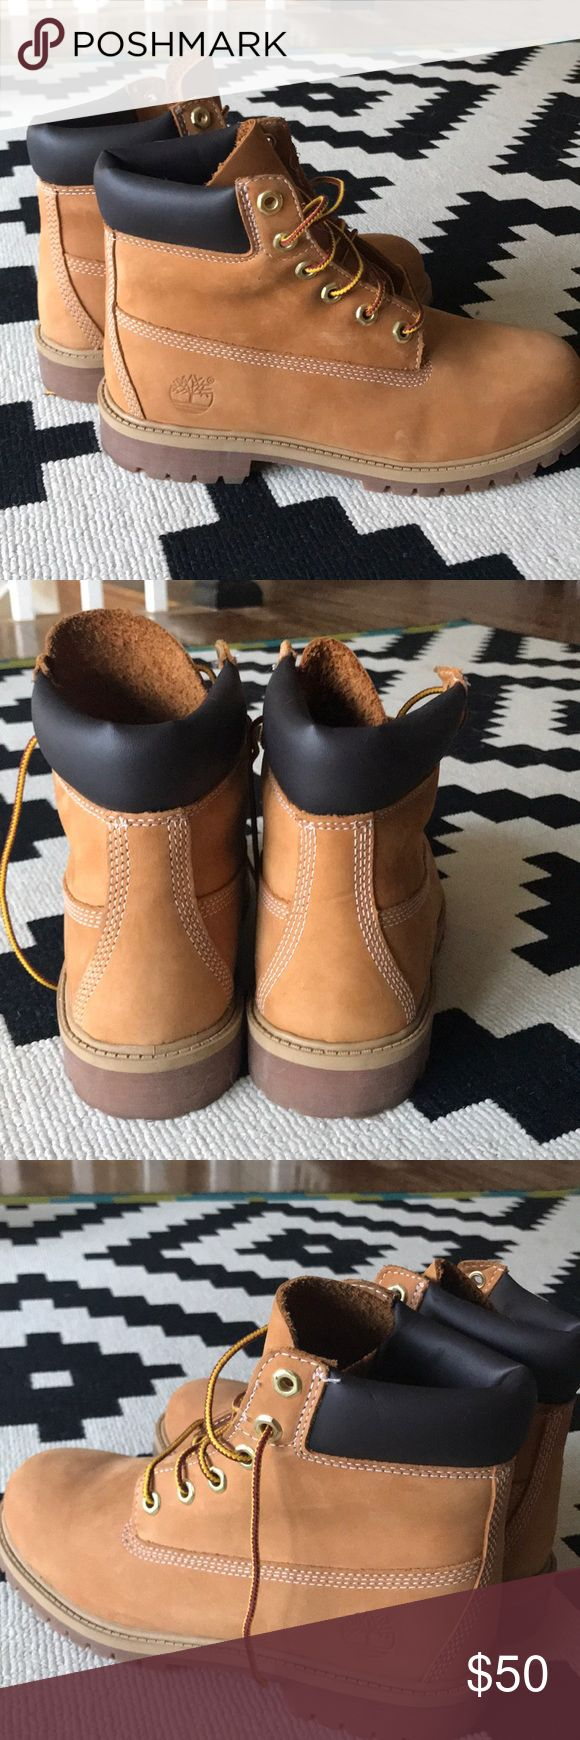 Women's Timberland Boot Like new Timberland Boots - worn only once! Size 8 💕 Timberland Shoes Lace Up Boots